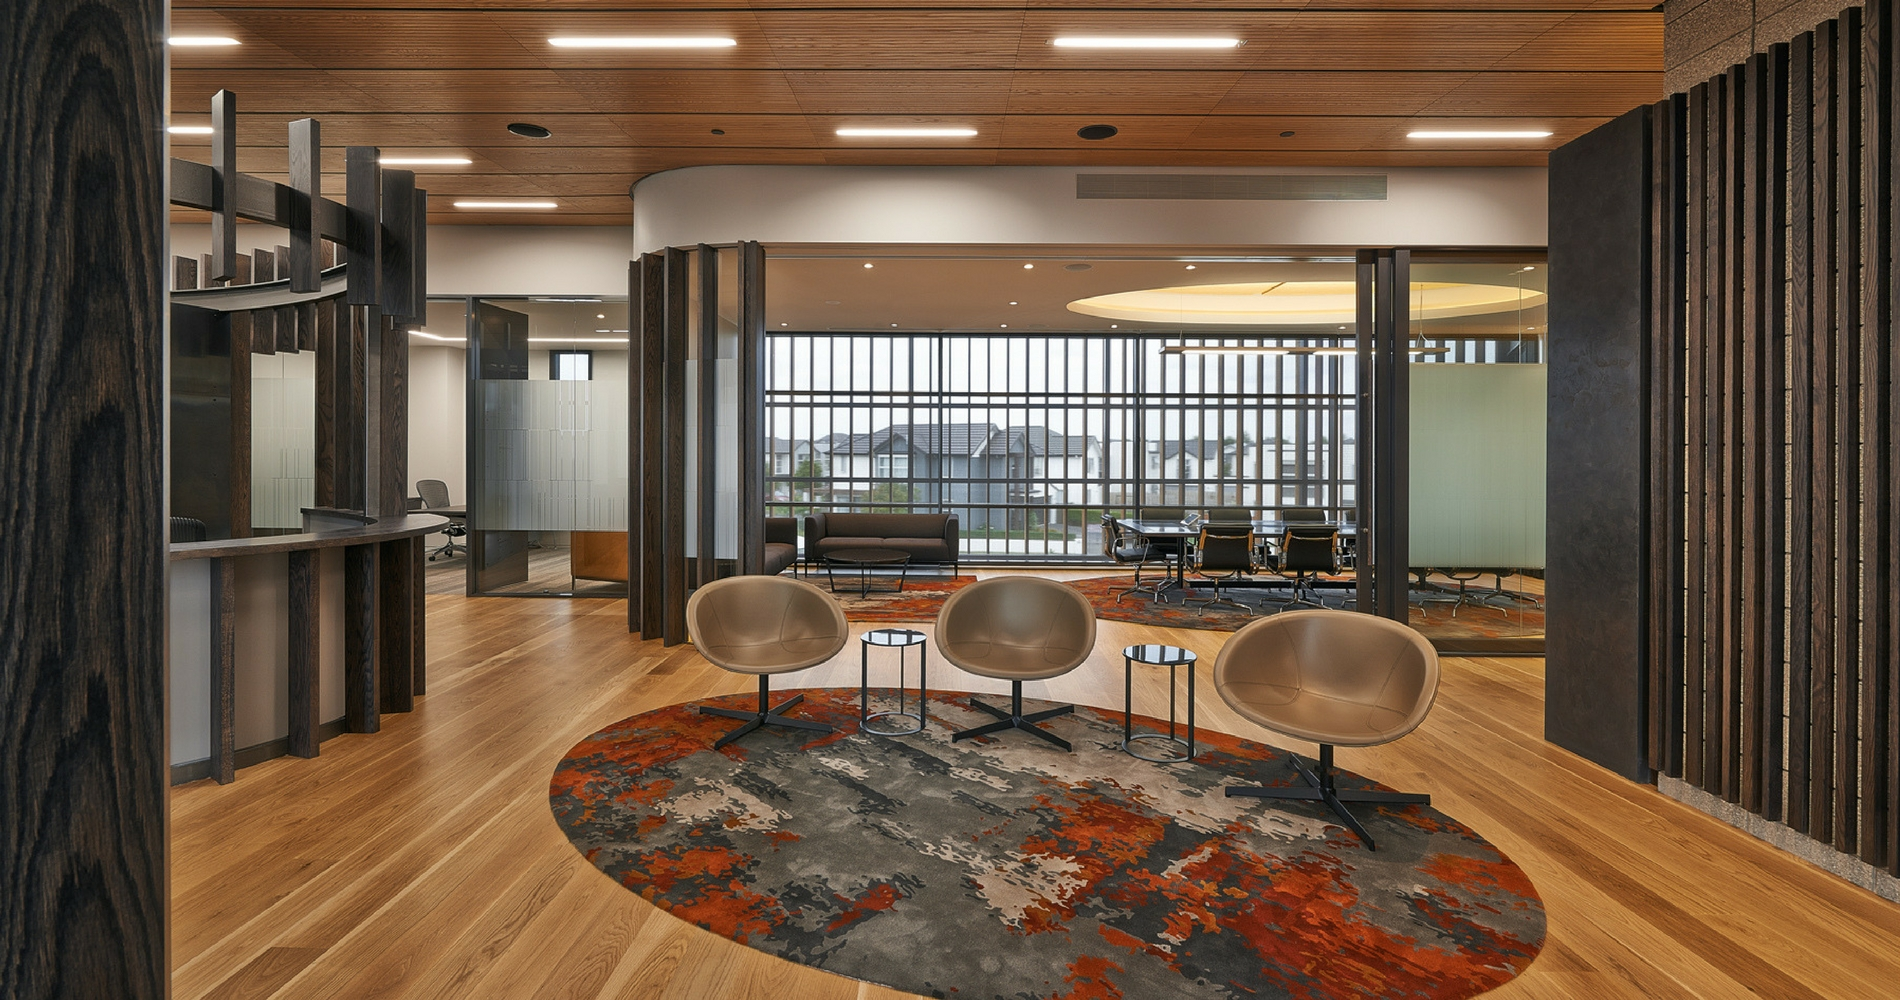 The three bespoke rugs are a standout feature of the client reception area and meeting rooms.